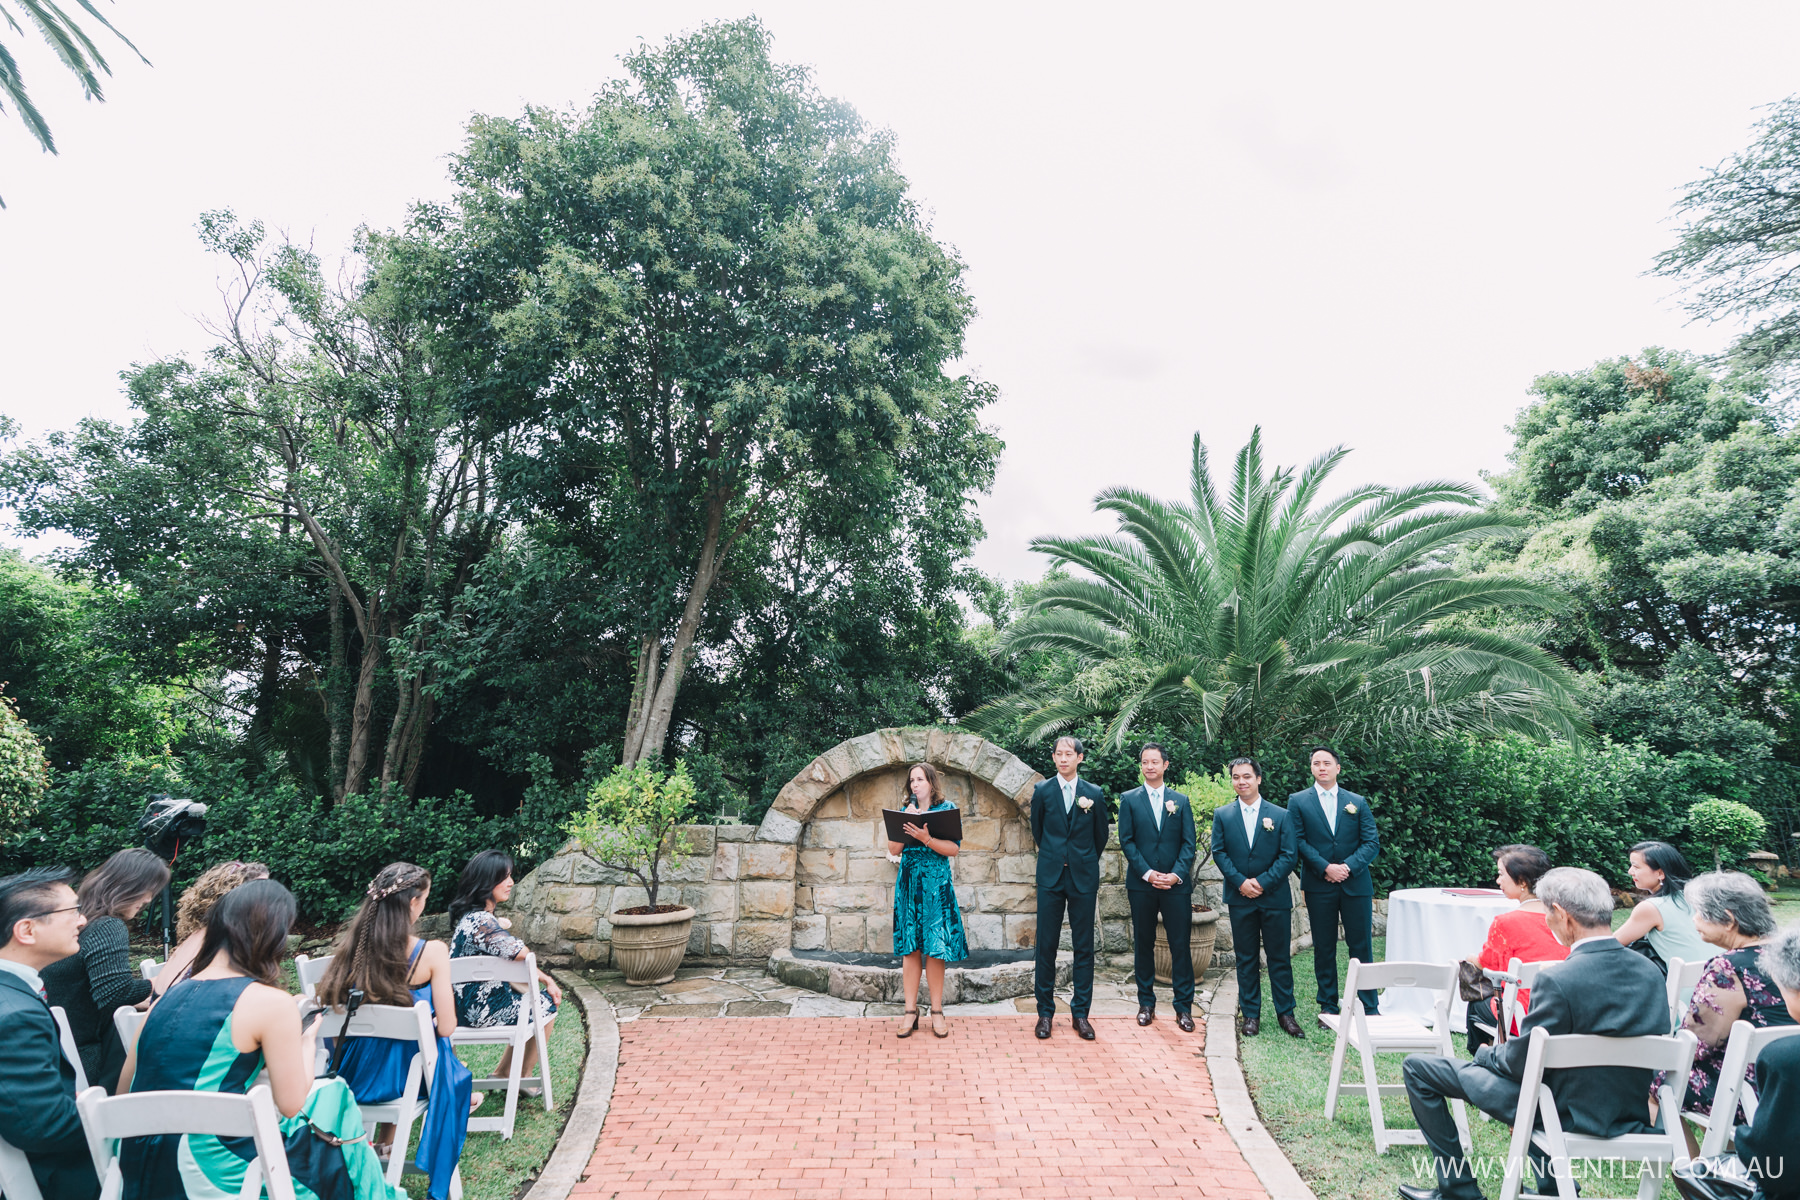 Enchanted Garden Wedding Ceremony and Reception at Oatlands House